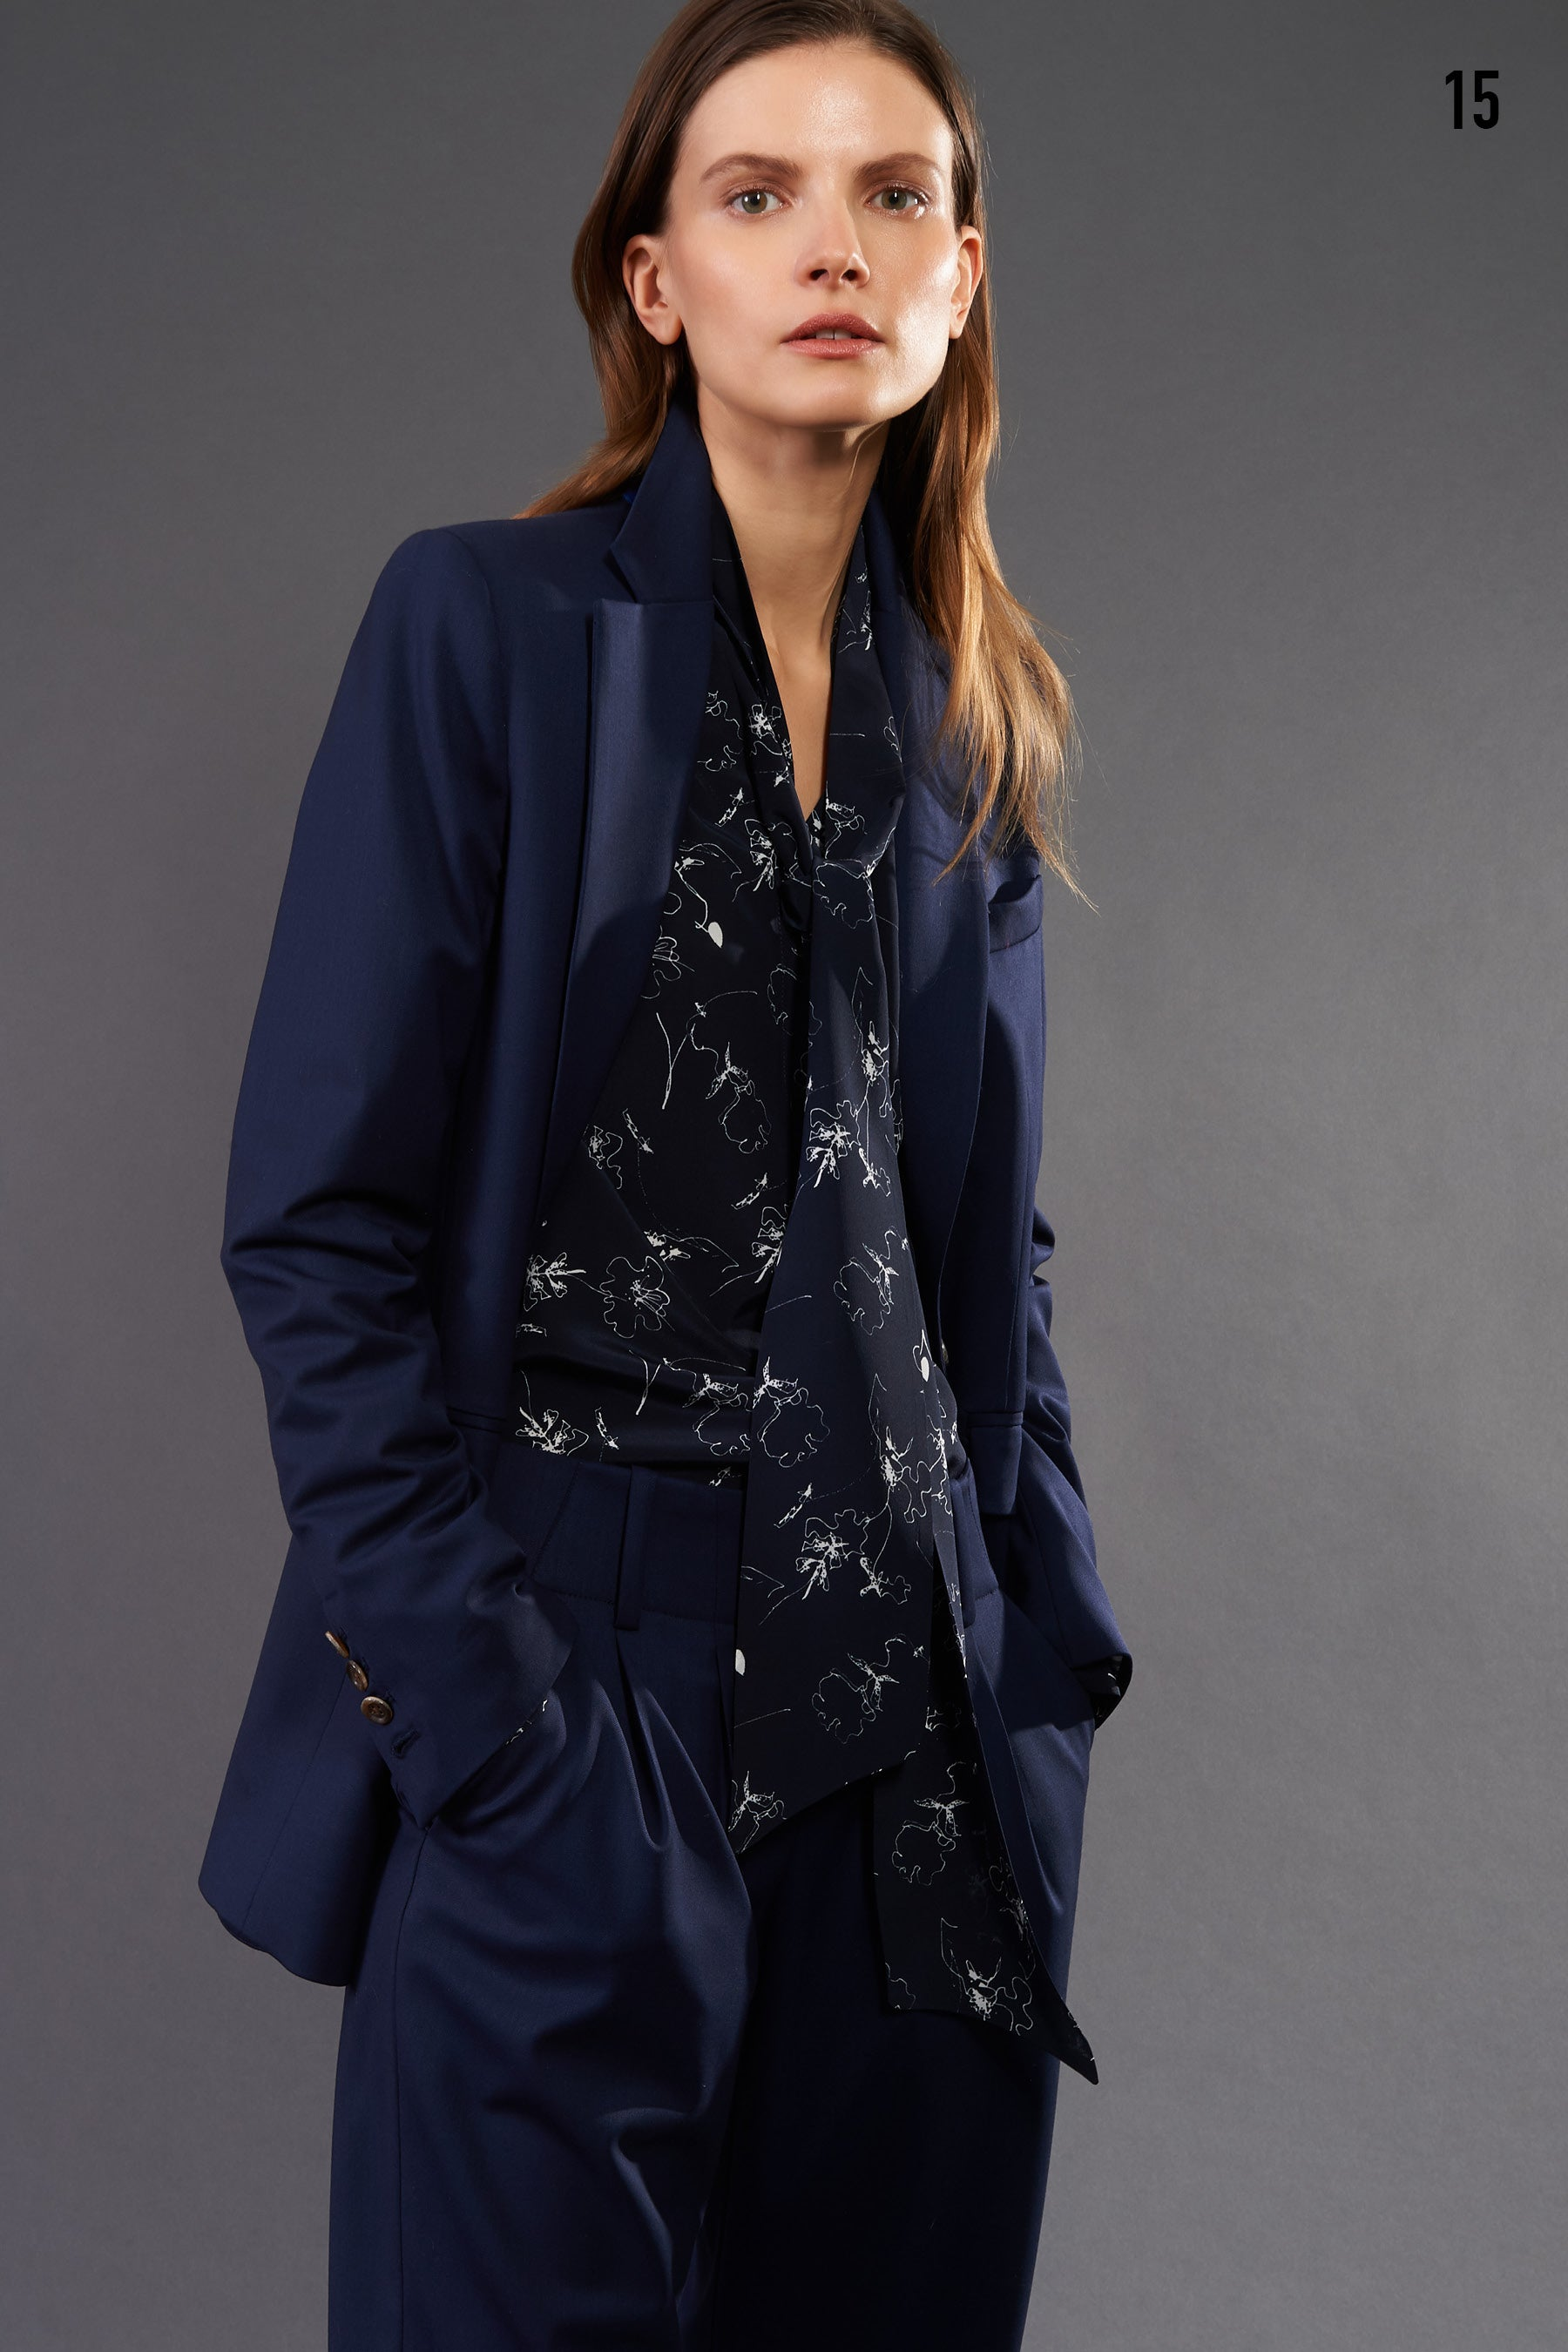 Kal Rieman Fall 2019 Lookbook Look 15